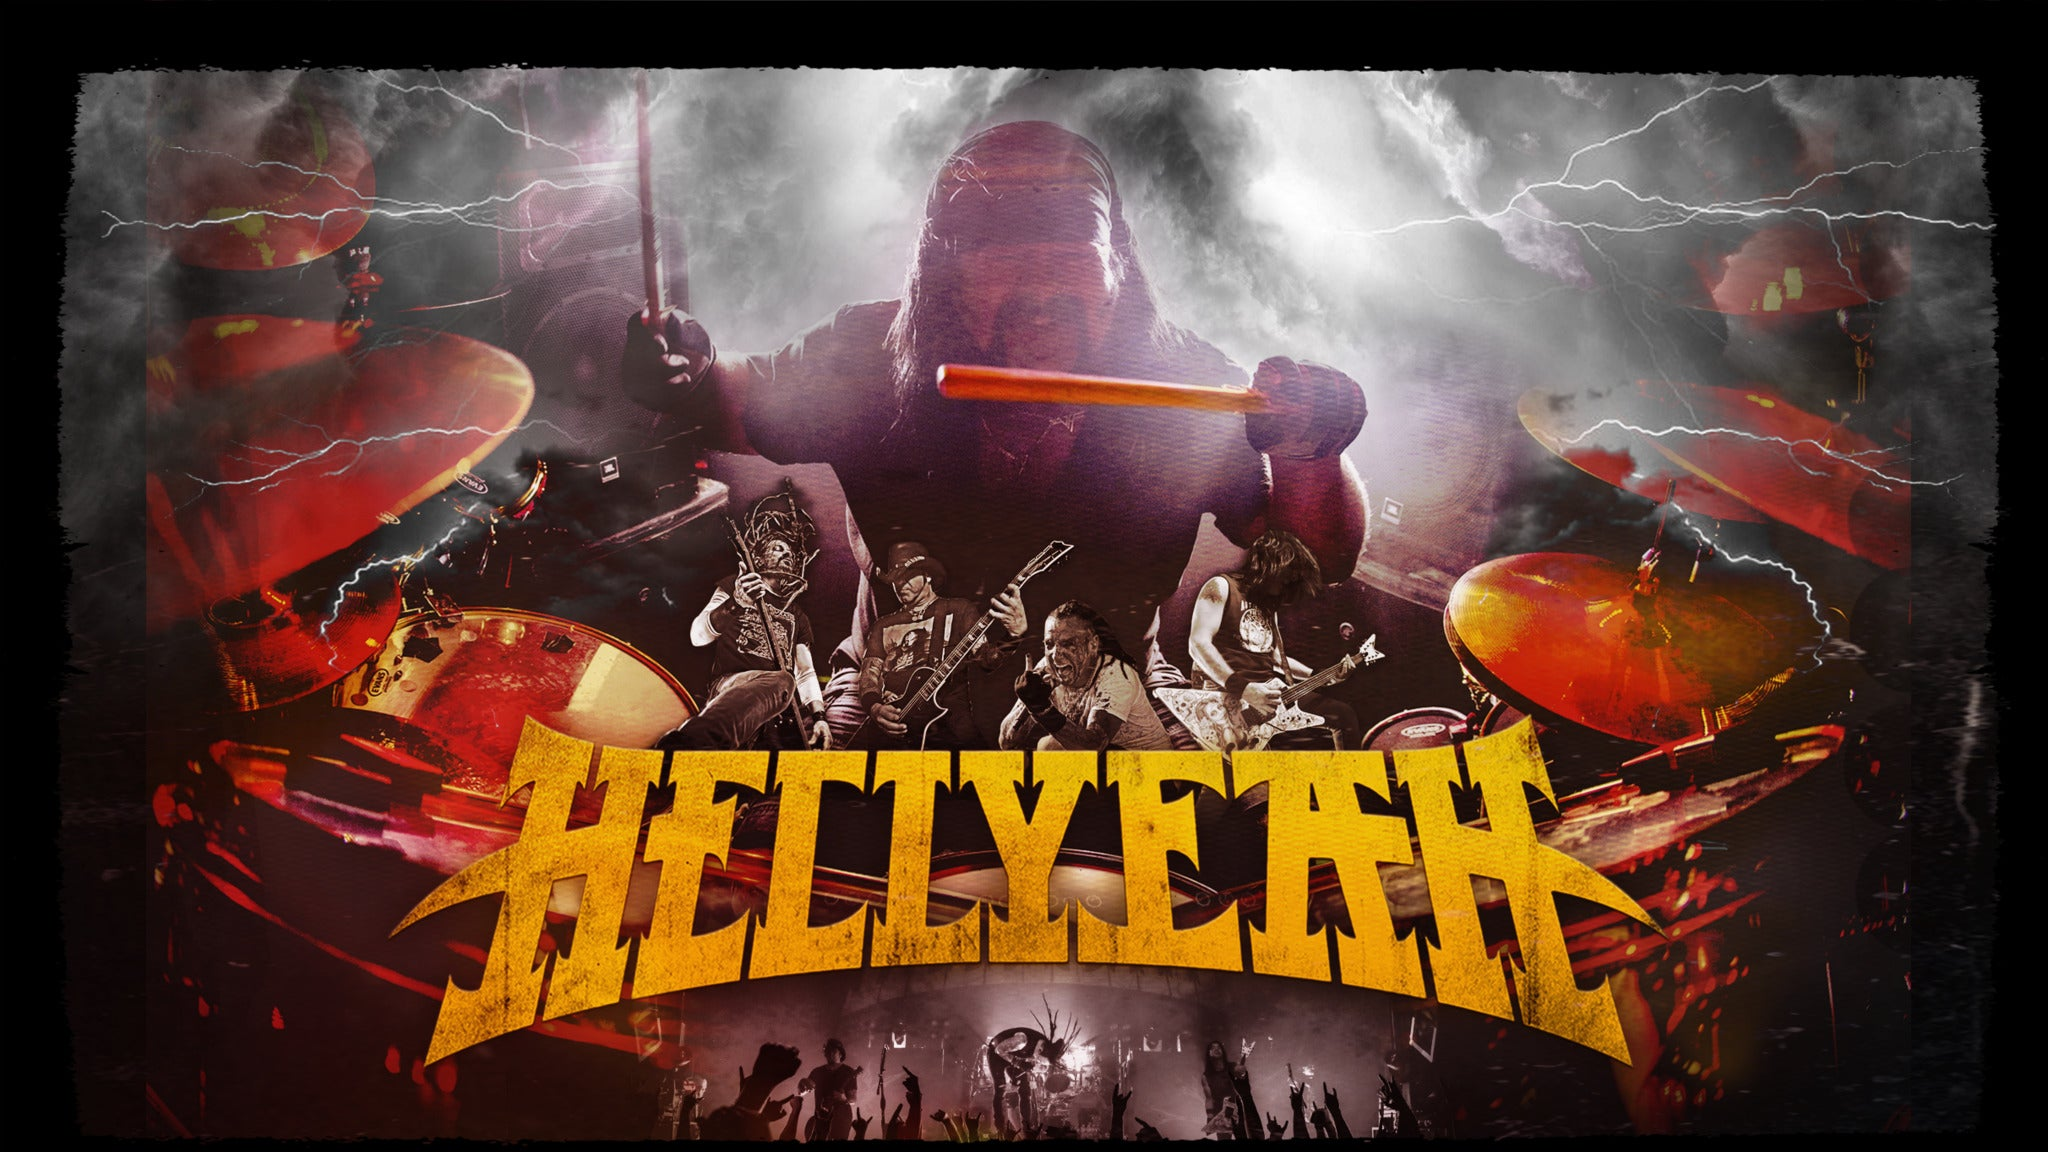 Hellyeah - A Celebration Of Life